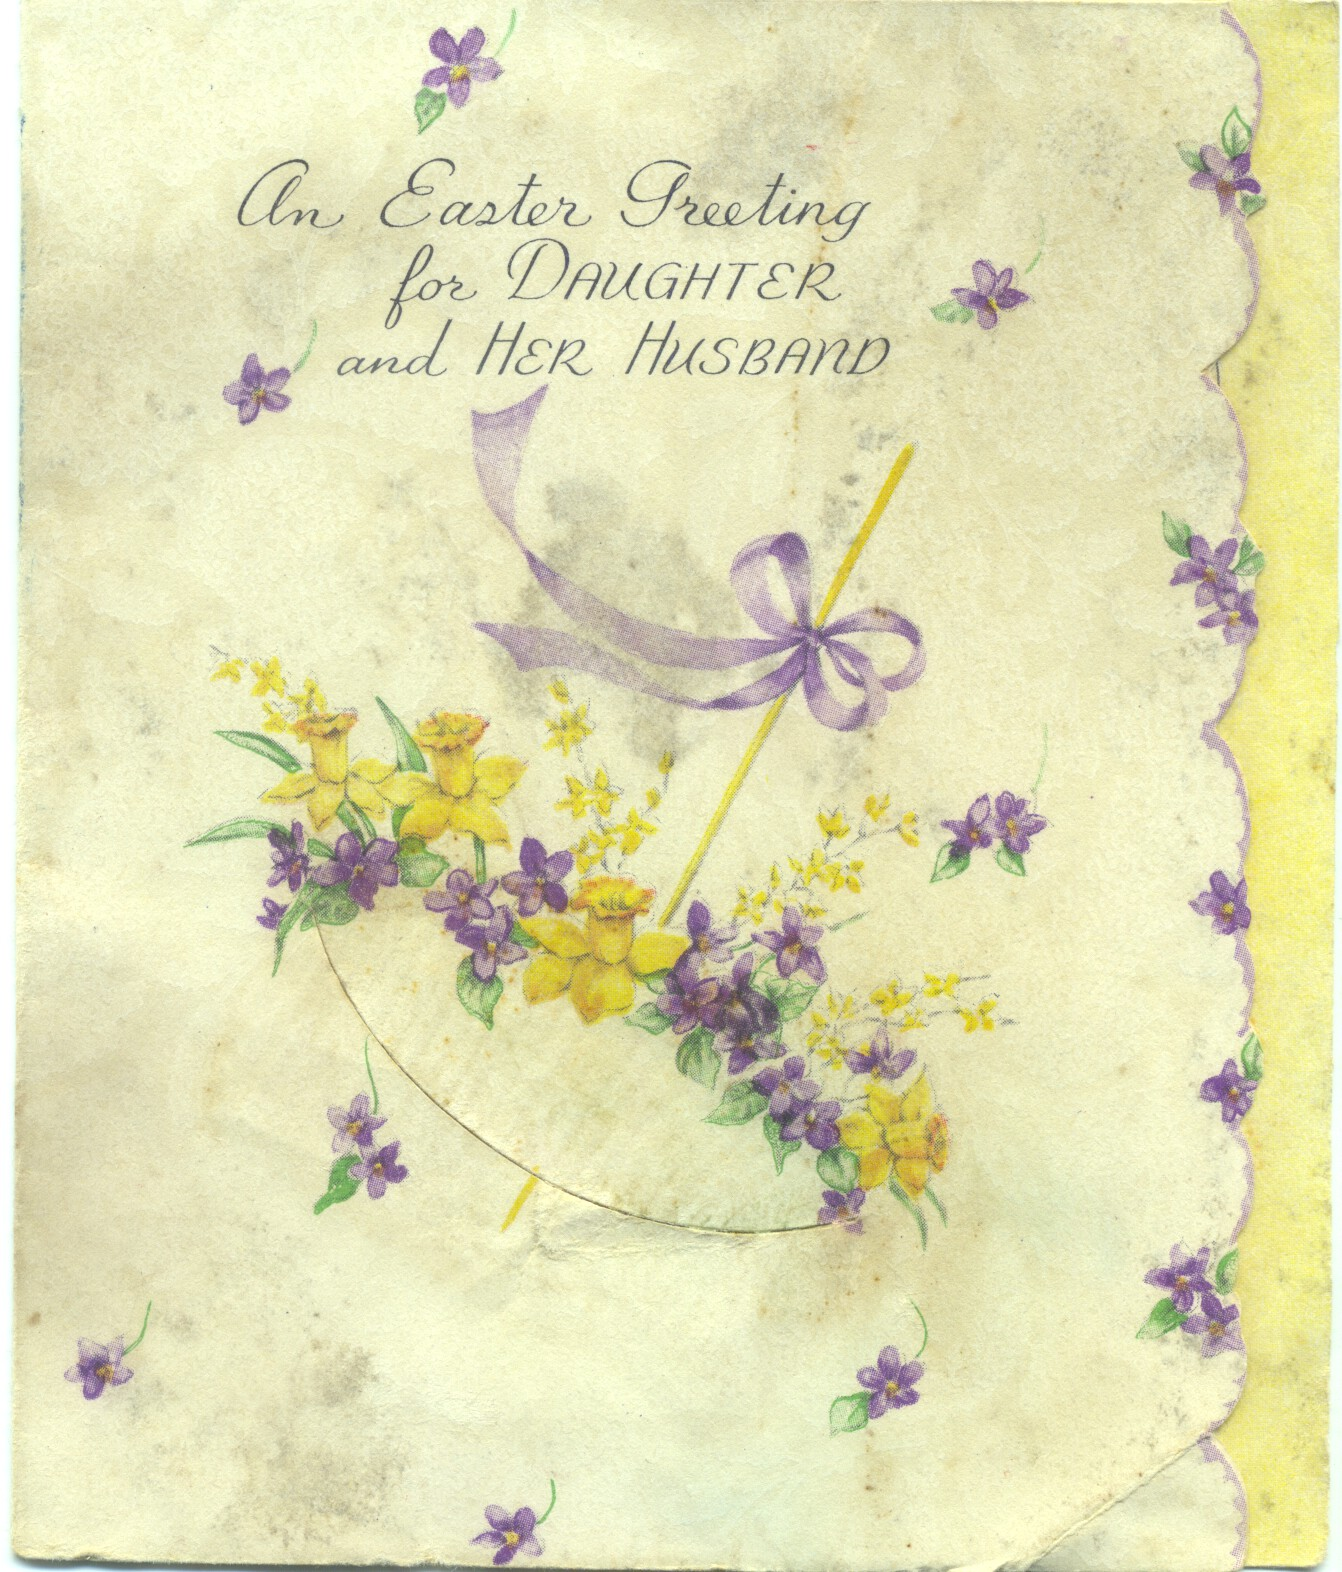 A 1944 Rust Craft greeting card to my mother and father from Mother's family